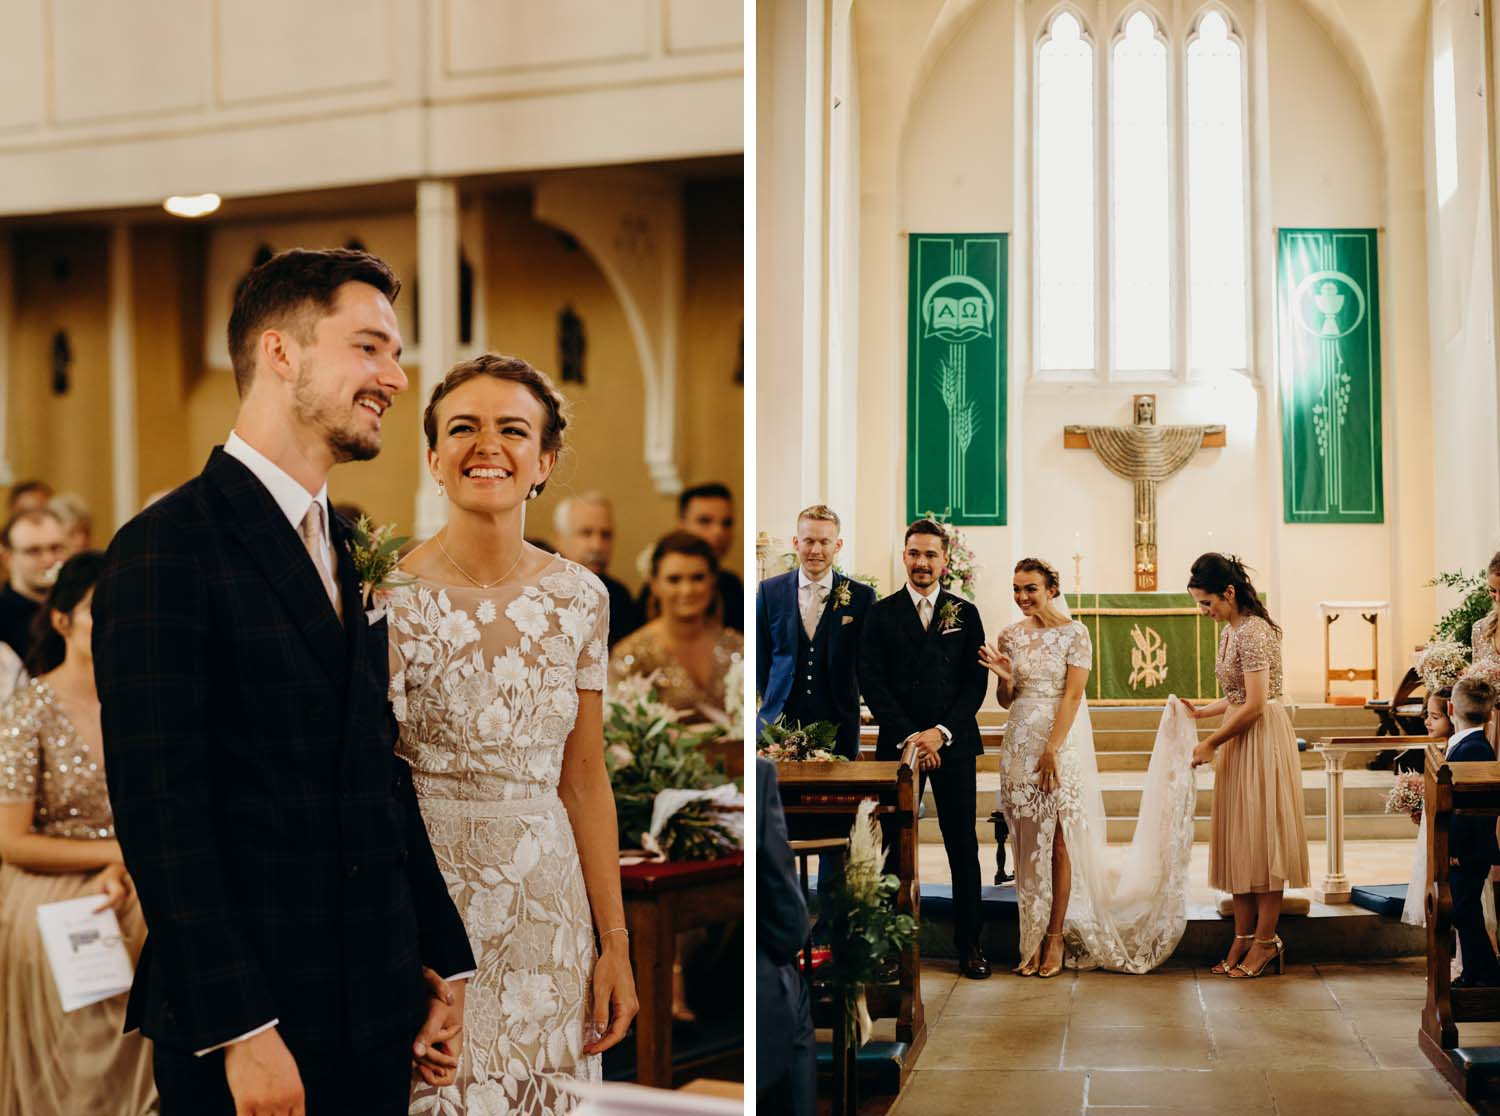 Church wedding in Buckinghamshire